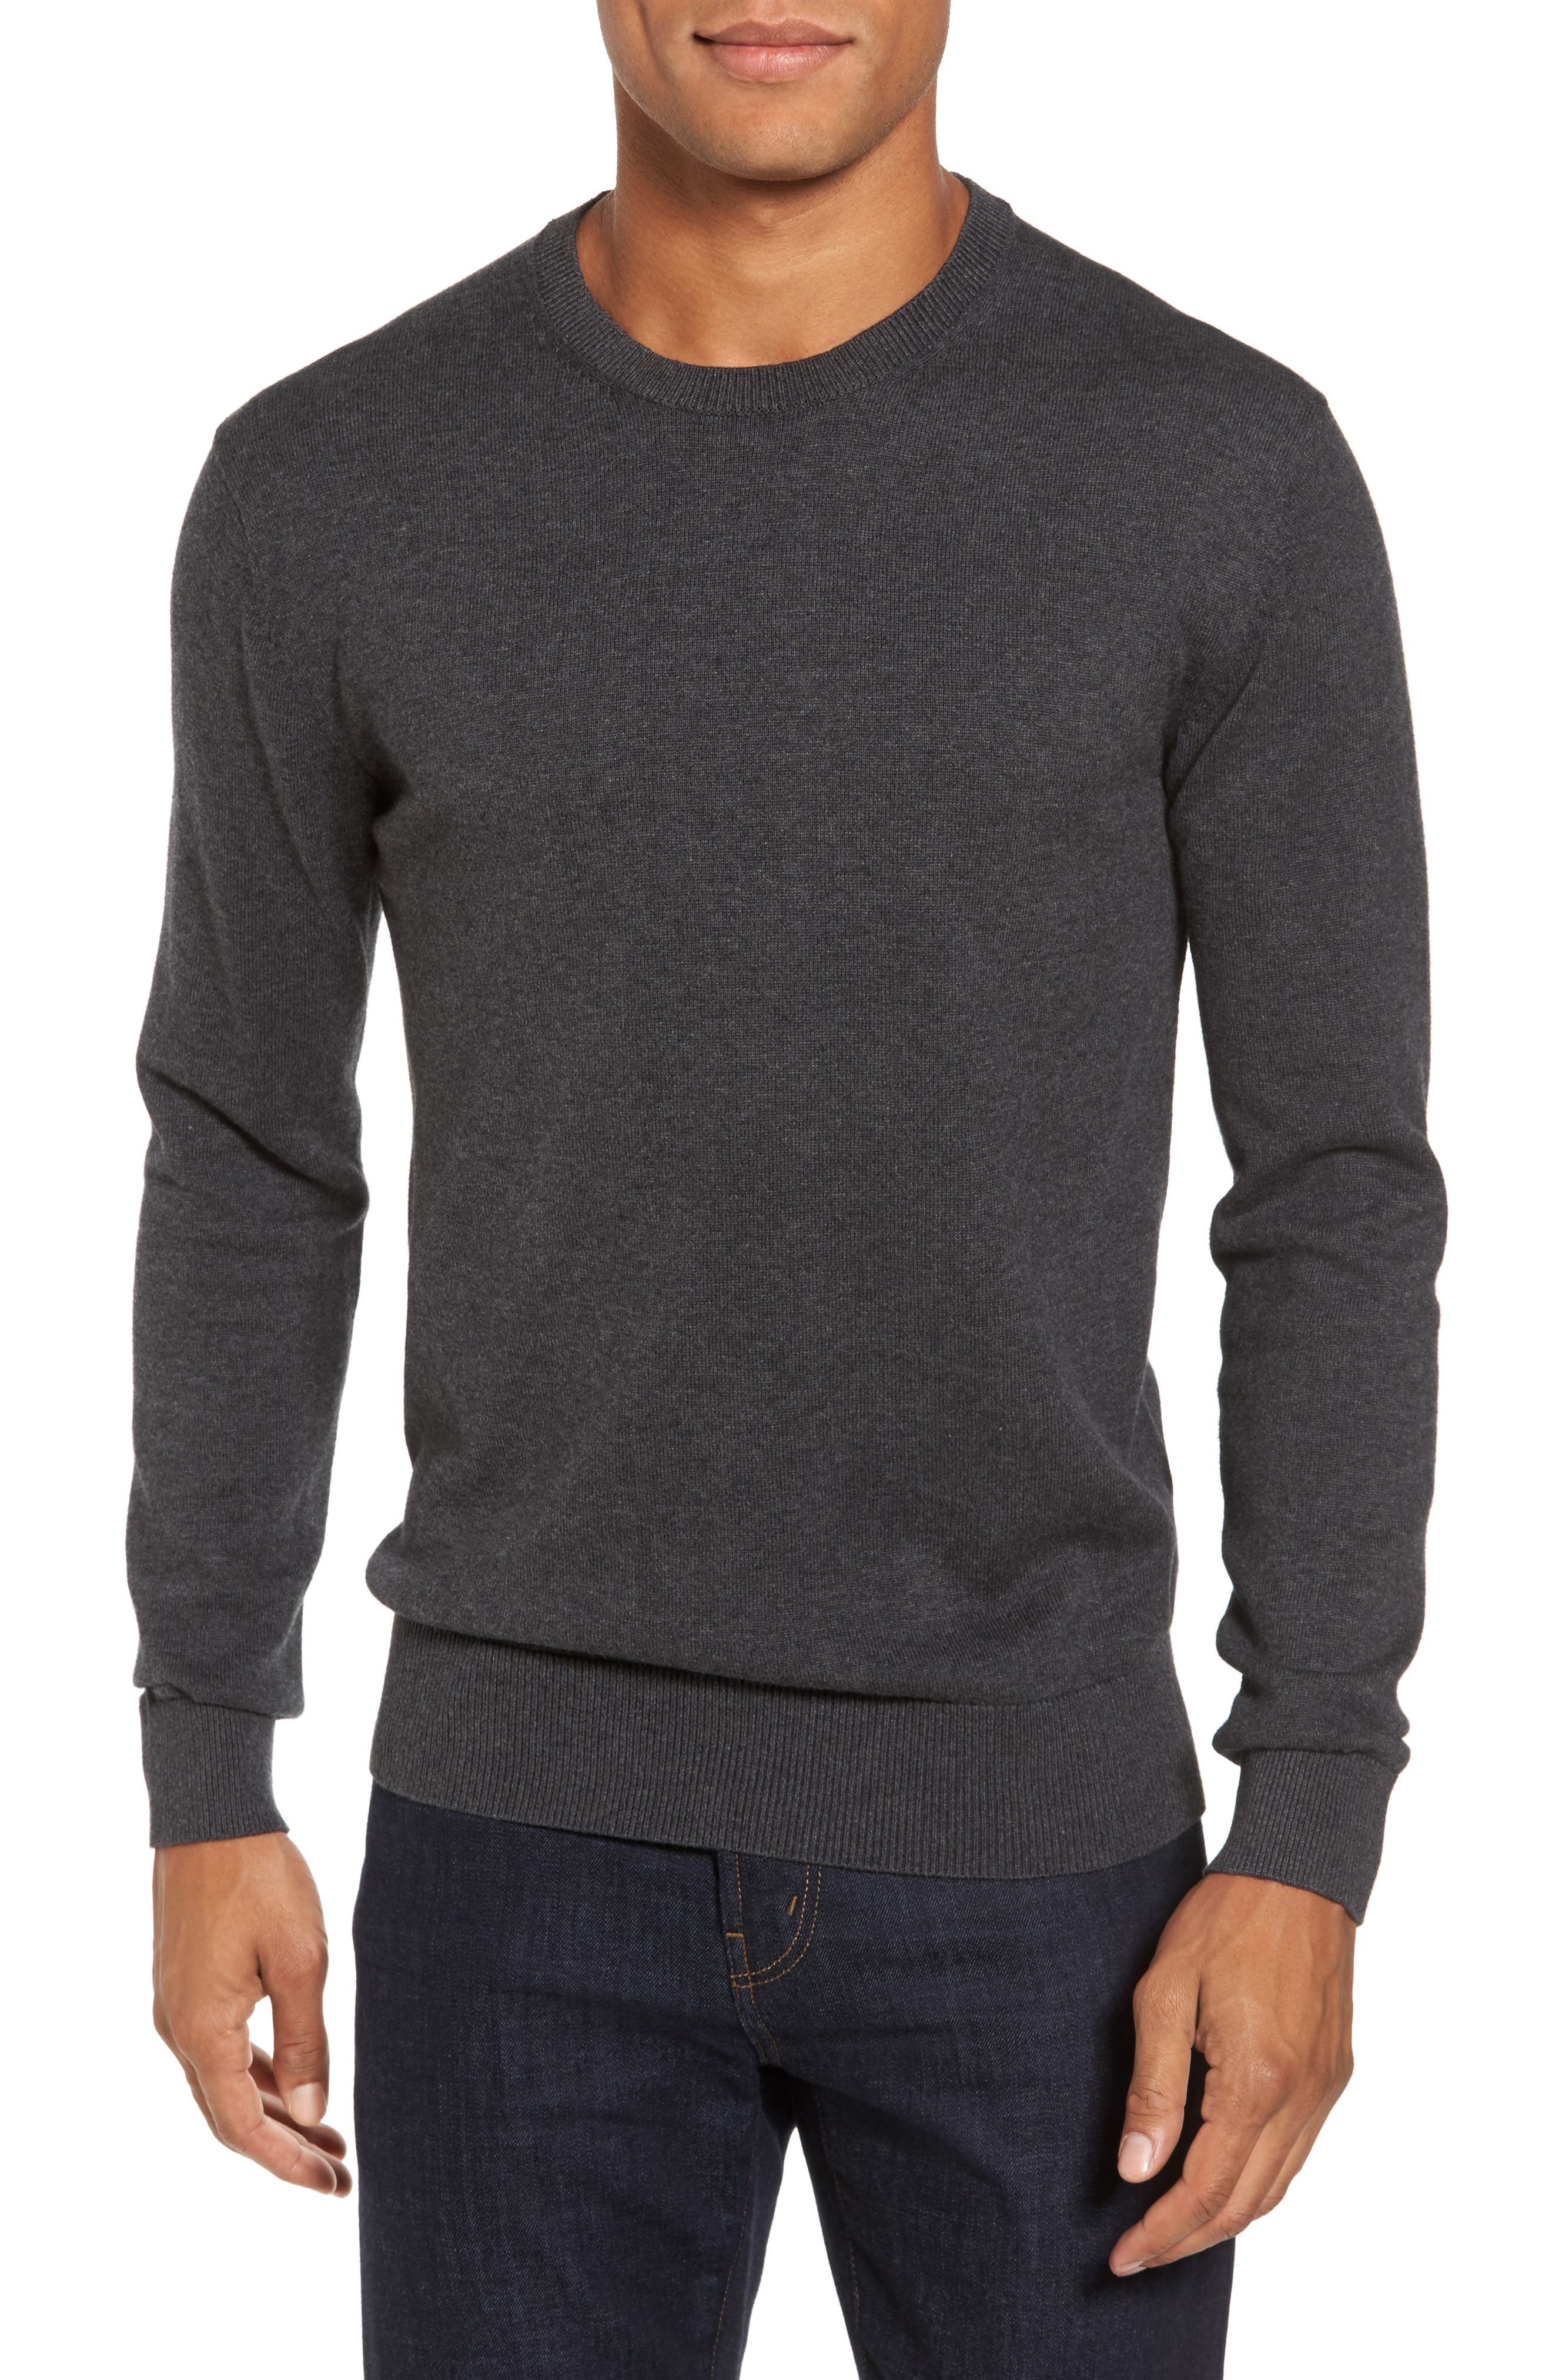 Portrait Crewneck Sweater,                             Main thumbnail 1, color,                             015